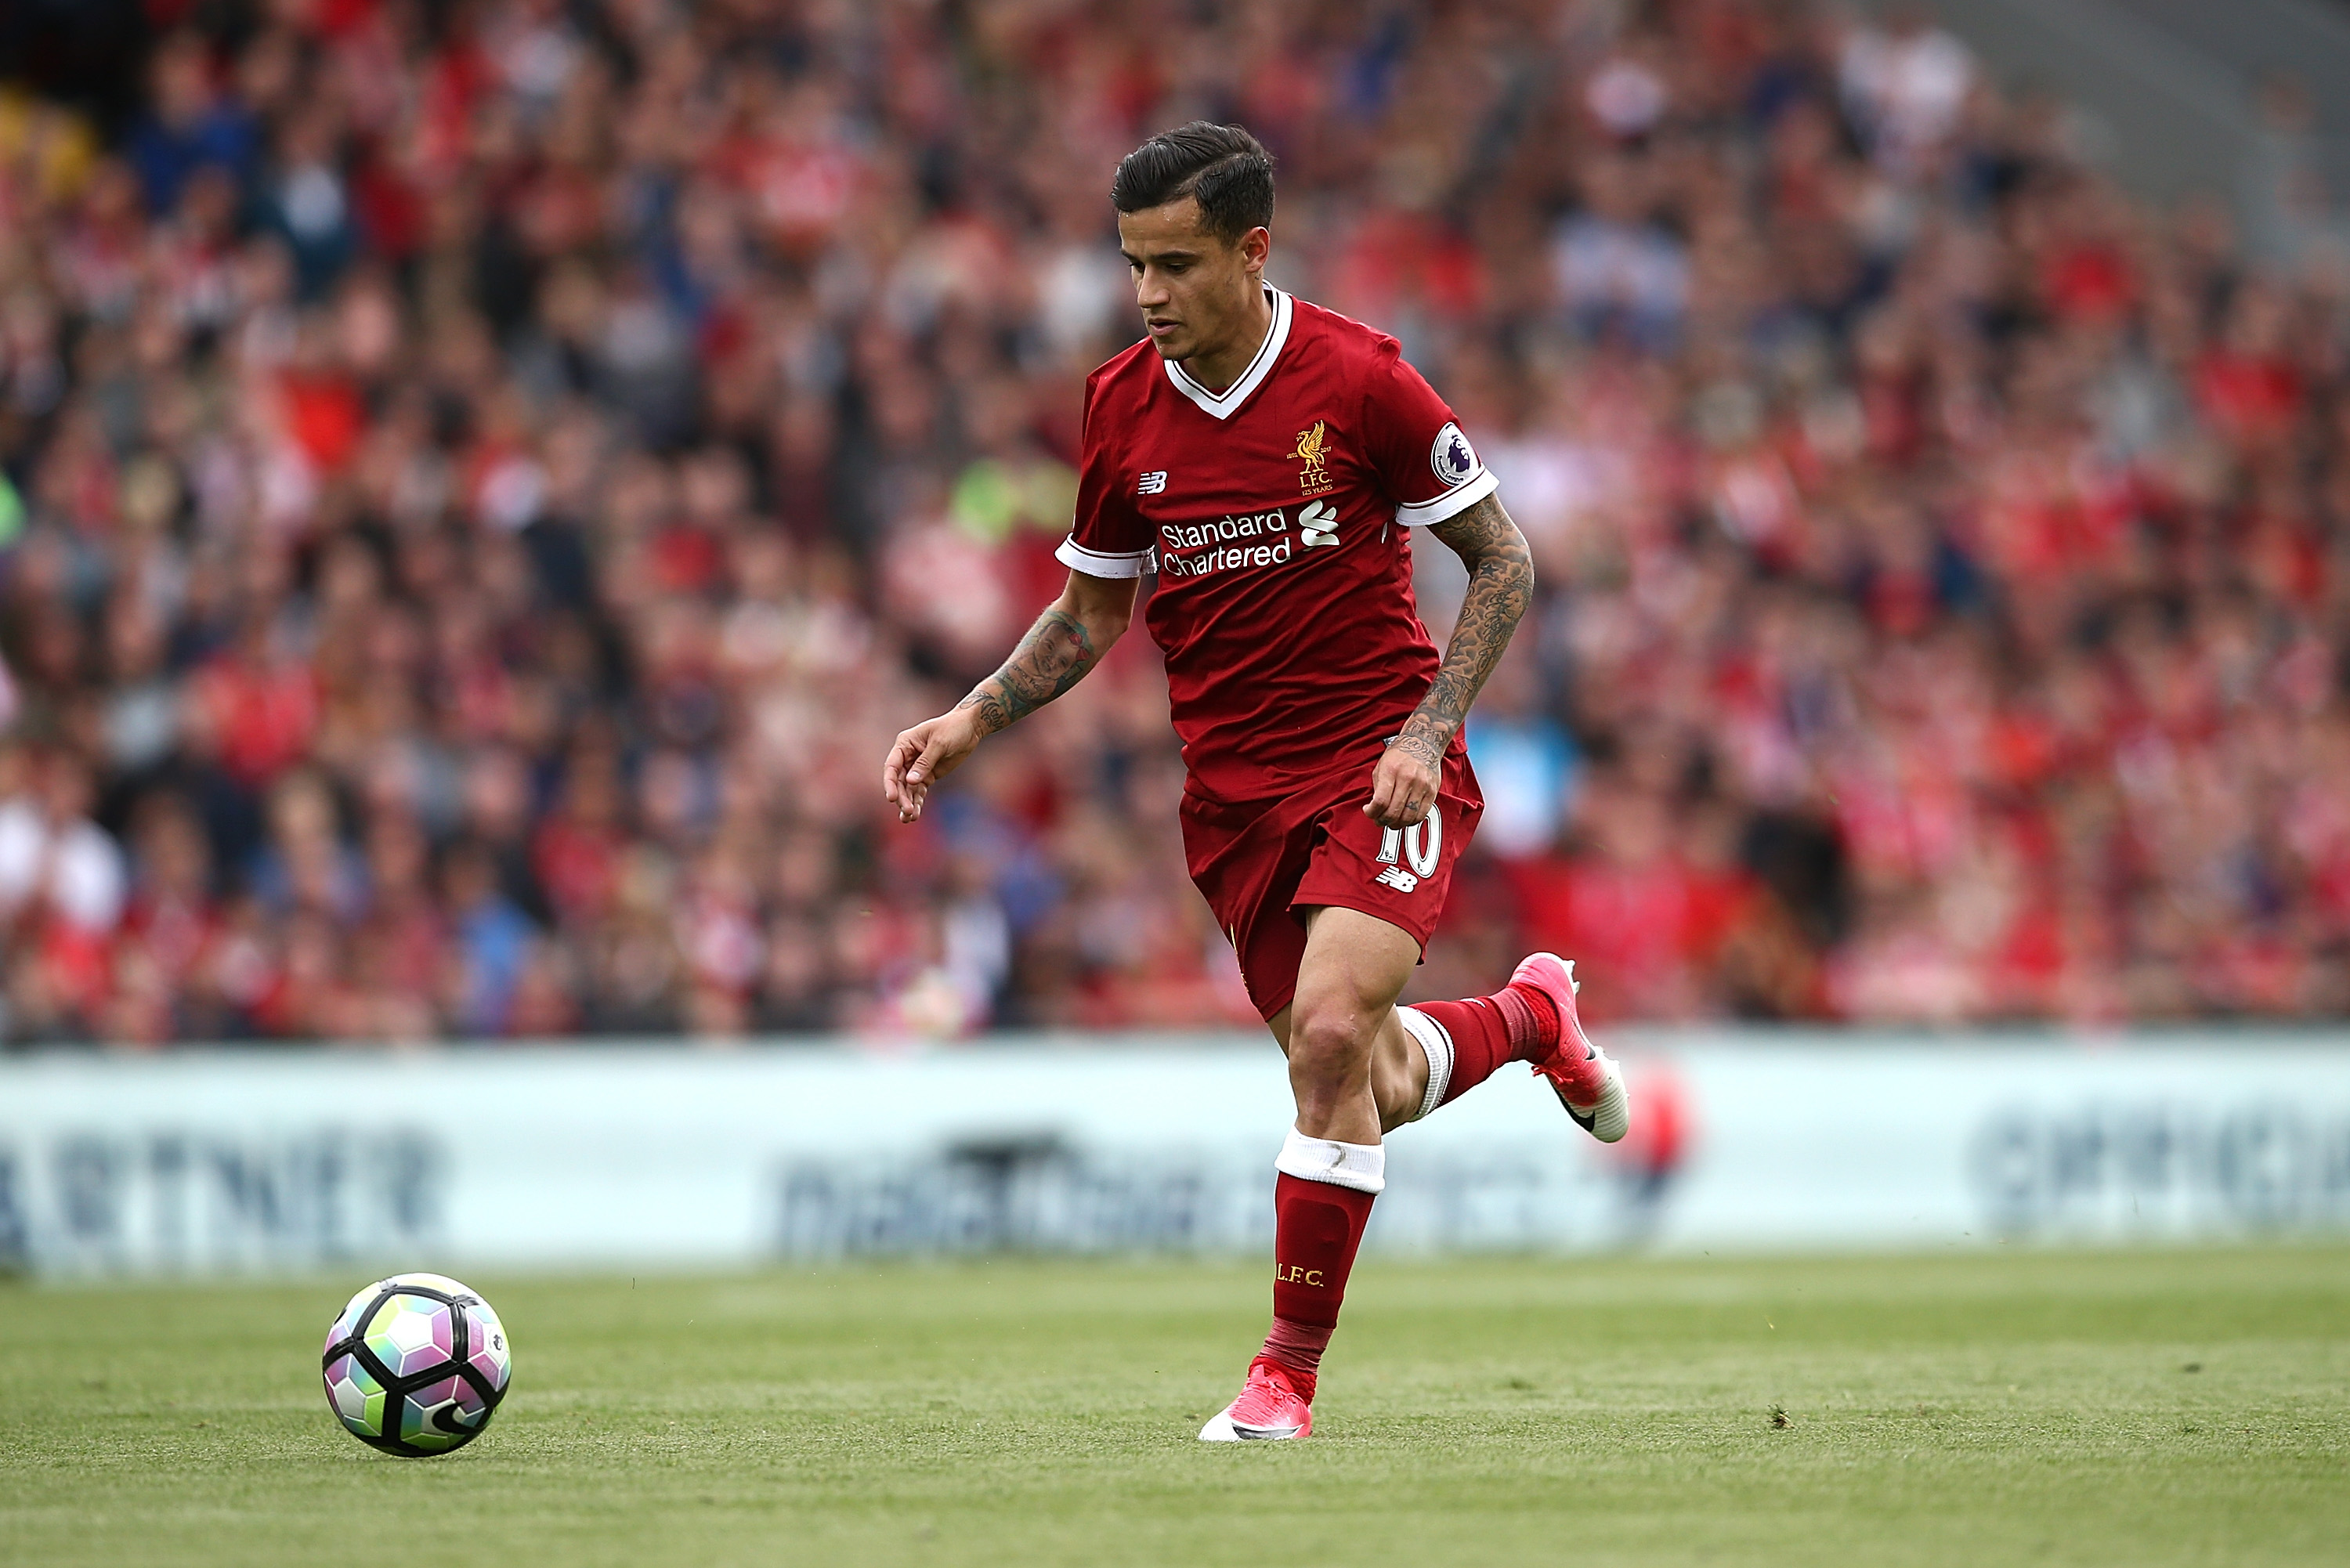 LIVERPOOL, ENGLAND - MAY 21:  Philippe Coutinho of Liverpool during the Premier League match between Liverpool and Middlesbrough at Anfield on May 21, 2017 in Liverpool, England.  (Photo by Jan Kruger/Getty Images)